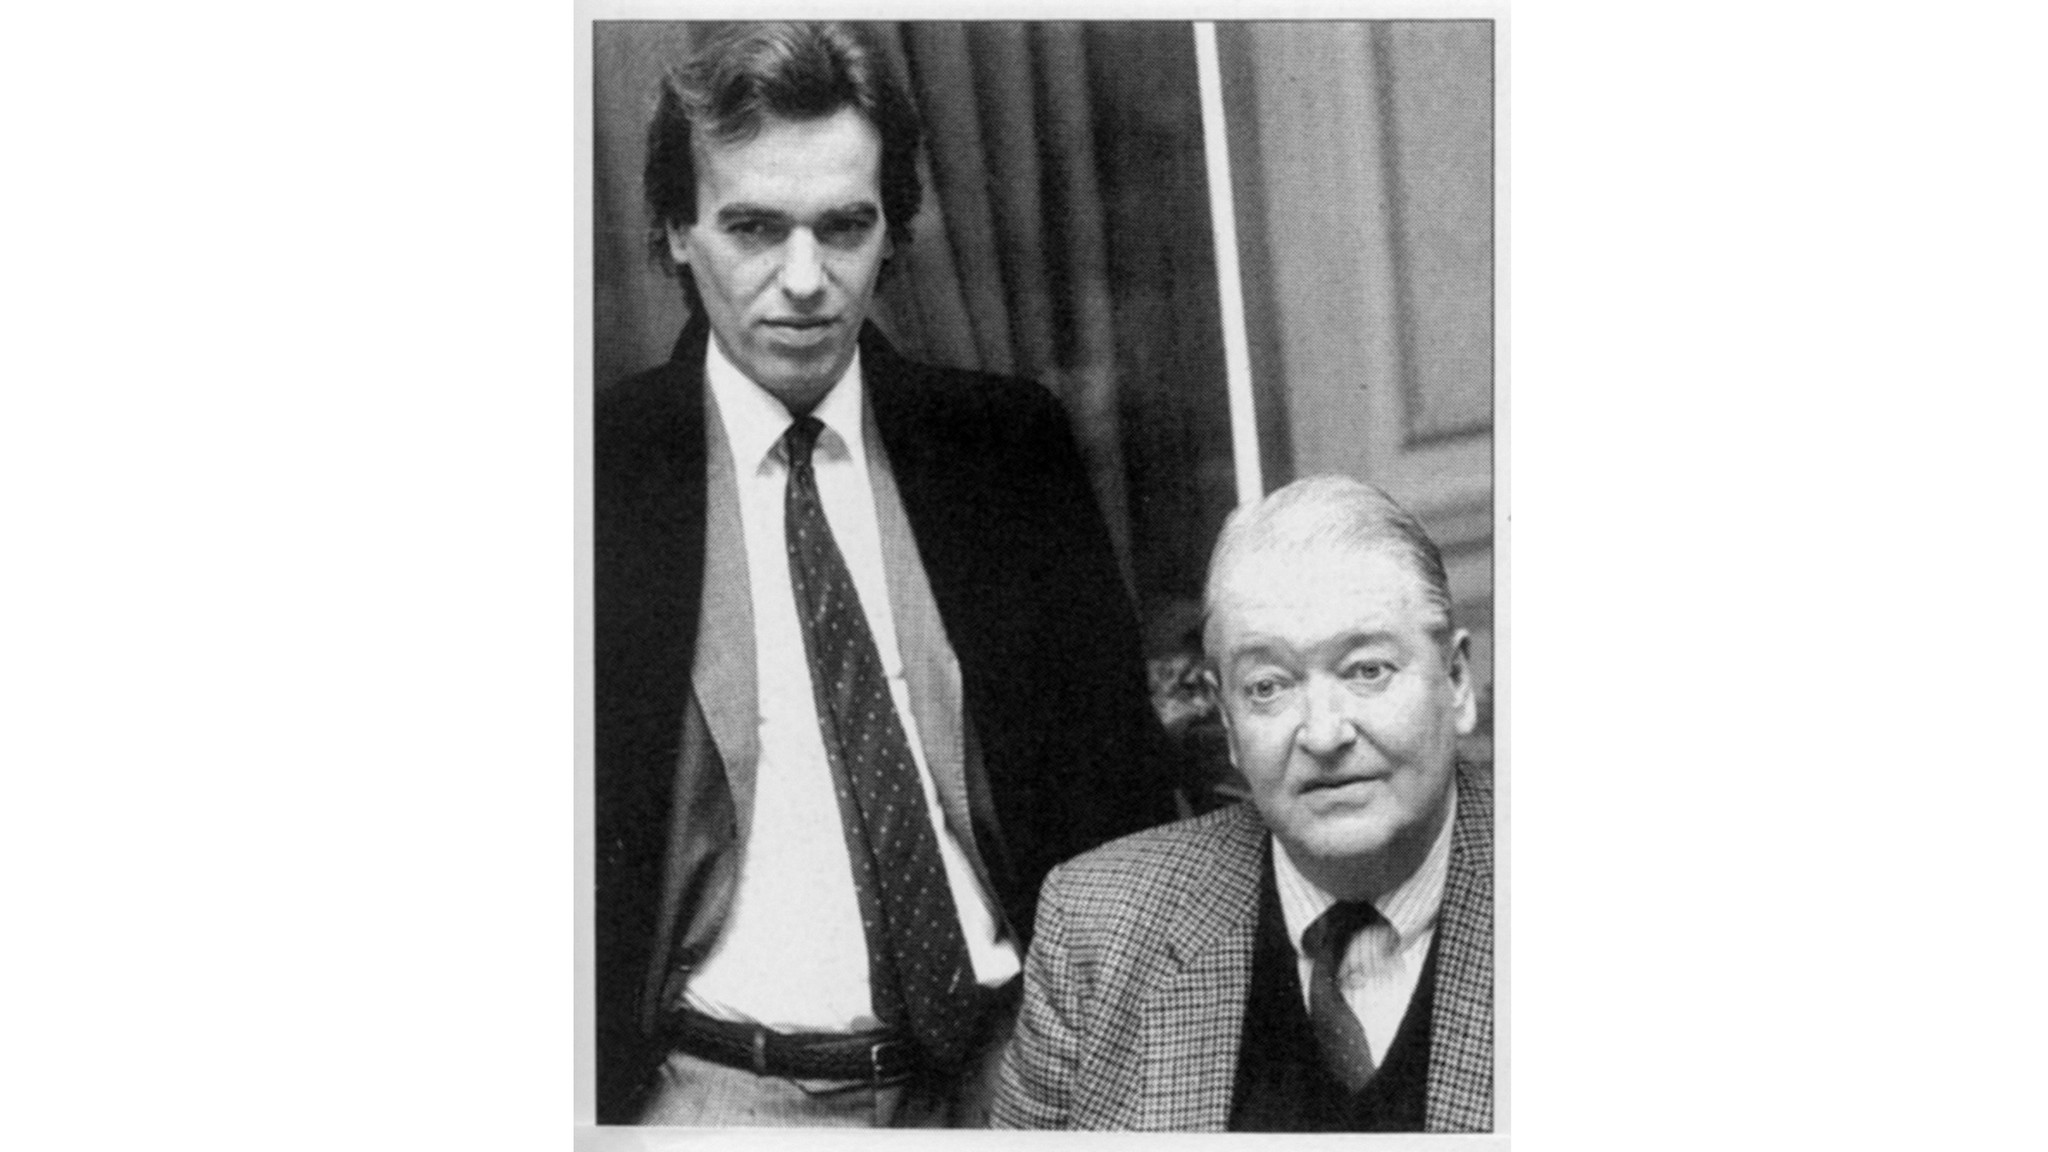 Martin Amis, left, with his father Kingsley Amis.